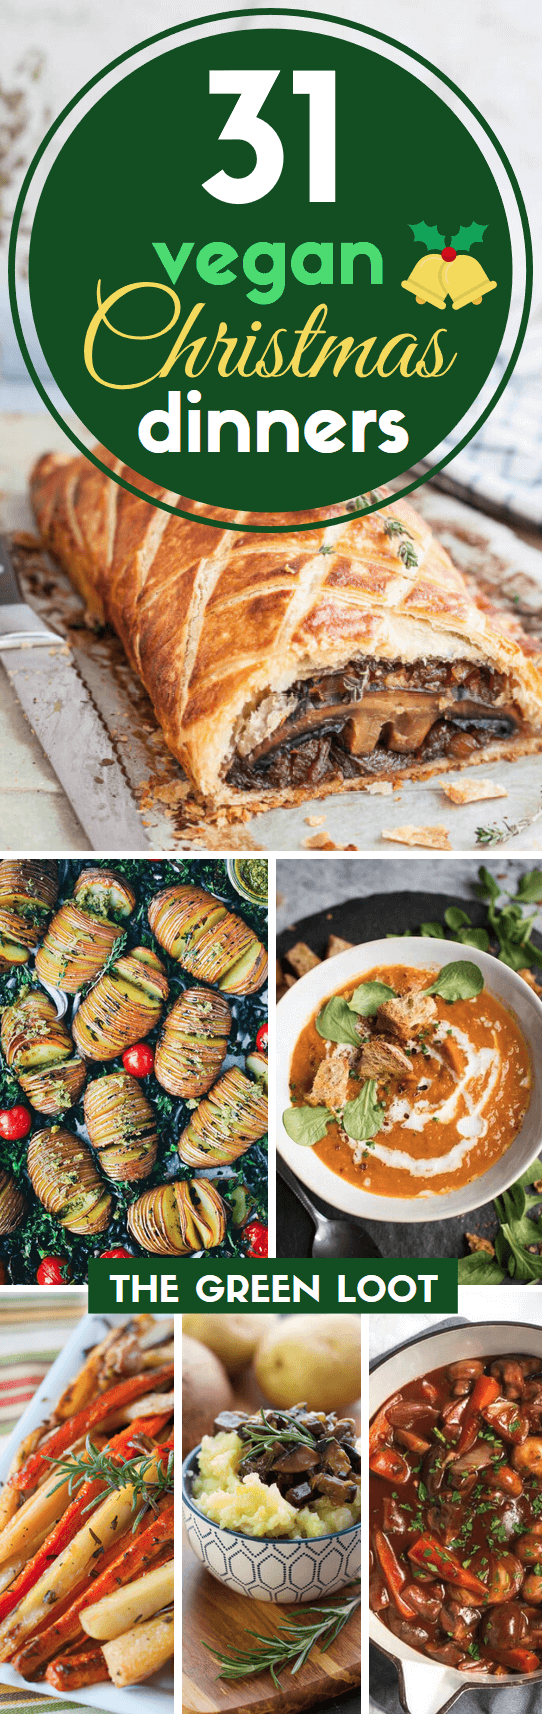 These vegan Christmas dinner recipes will create a healthy and easy holiday menu! They are super delicious, meatless and plant-based main dishes and sides. Enjoy! | The Green Loot ... #vegan #Christmas